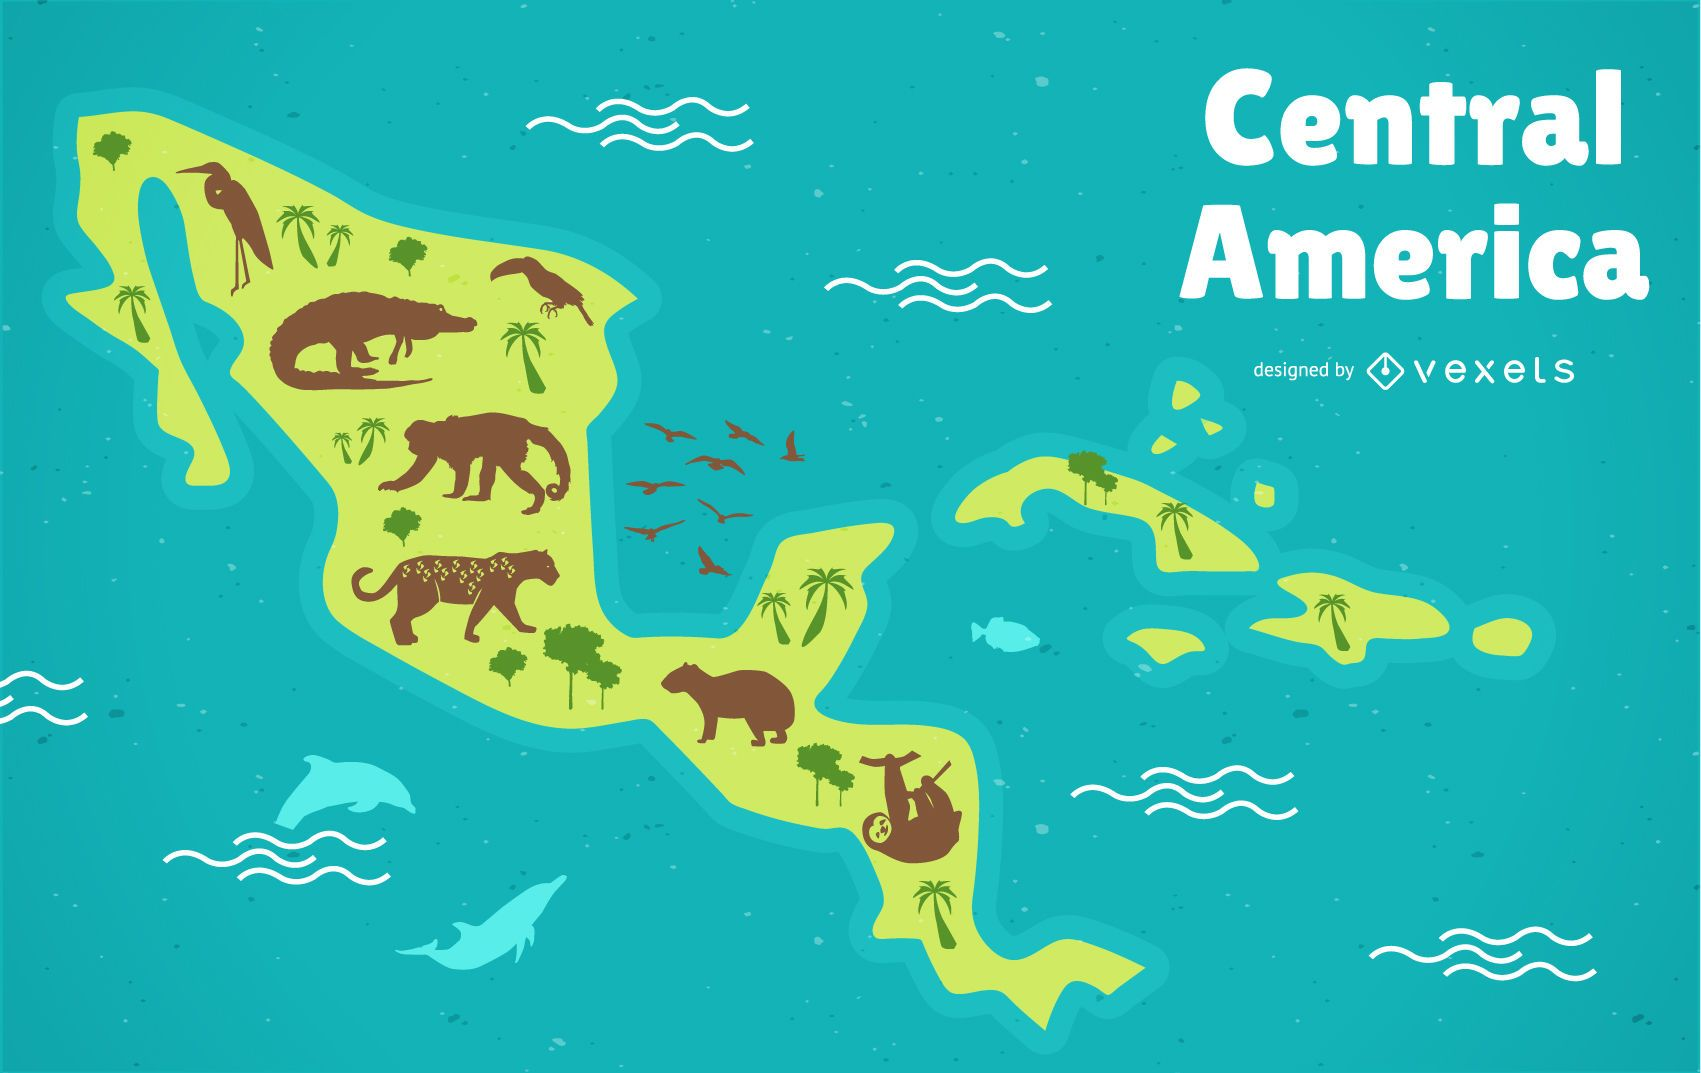 Central America Map - Vector download on map of south america, map of bermuda, map of the americas, map of paraguay, map of florida, map of united states, map of europe, map of ohio, map of china, map of caribbean, map of italy, map of mexico, map of usa, map of france, map of honduras, map of the united states, map of texas, map of africa, map of nicaragua, map of pacific islands, map of el salvador, map of bahamas, map of canada, map of belize, map of asia, map of middle america, map of germany, map of dominican republic, world map, map of guatemala, map of the world, map of us, map of west indies, map of north carolina, map of western hemisphere, map of middle east, map of california, map of costa rica, map of guam,